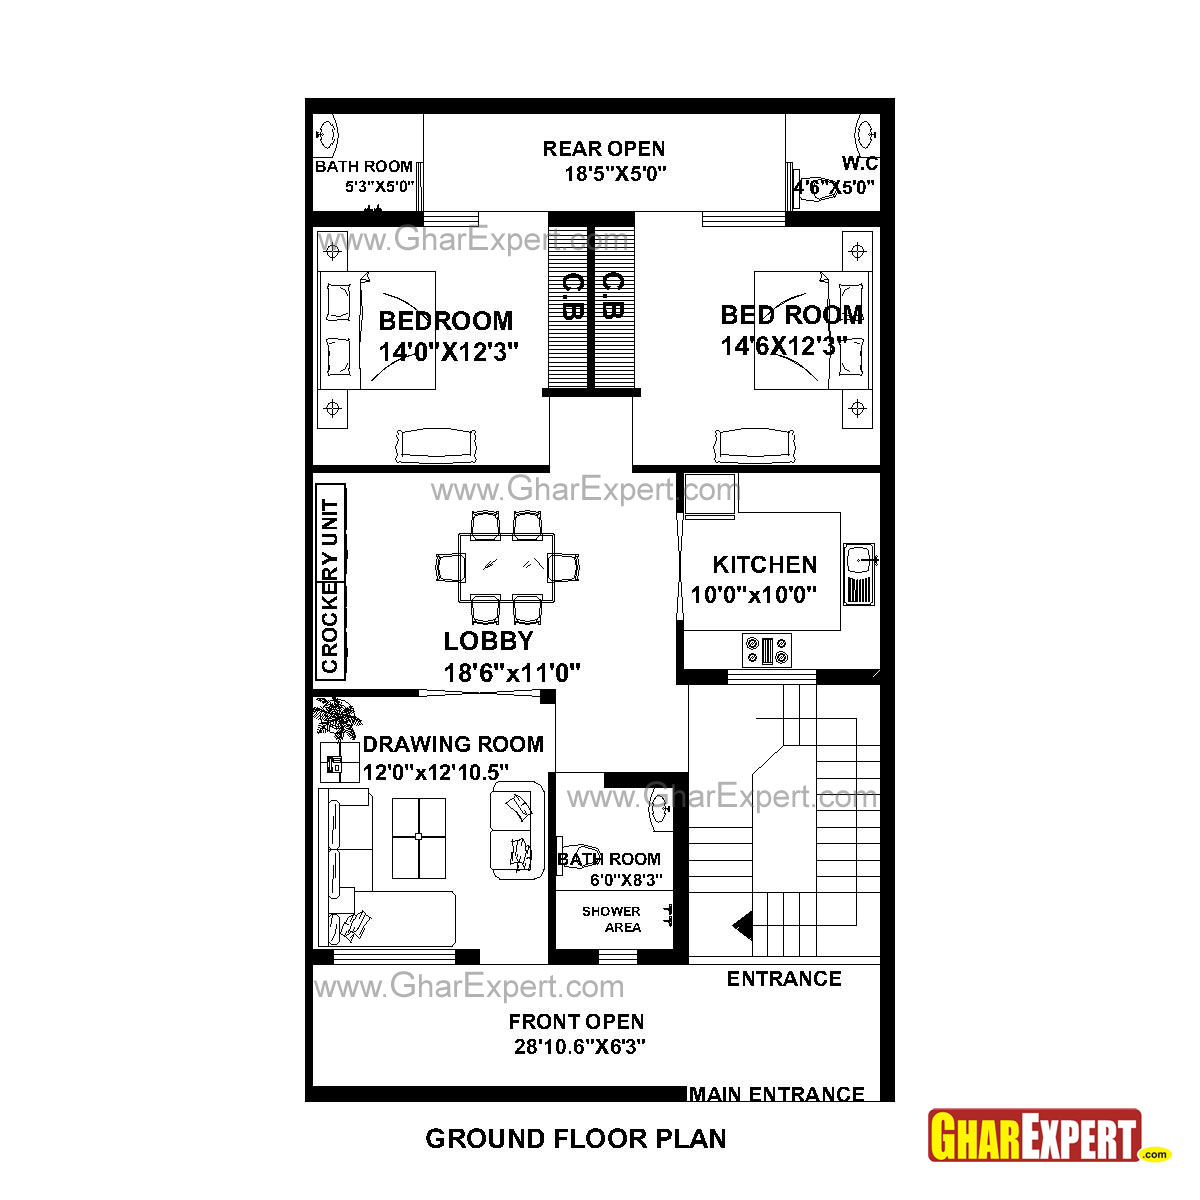 House plan for 30 feet by 51 feet plot plot size 170 30 by 30 house plans